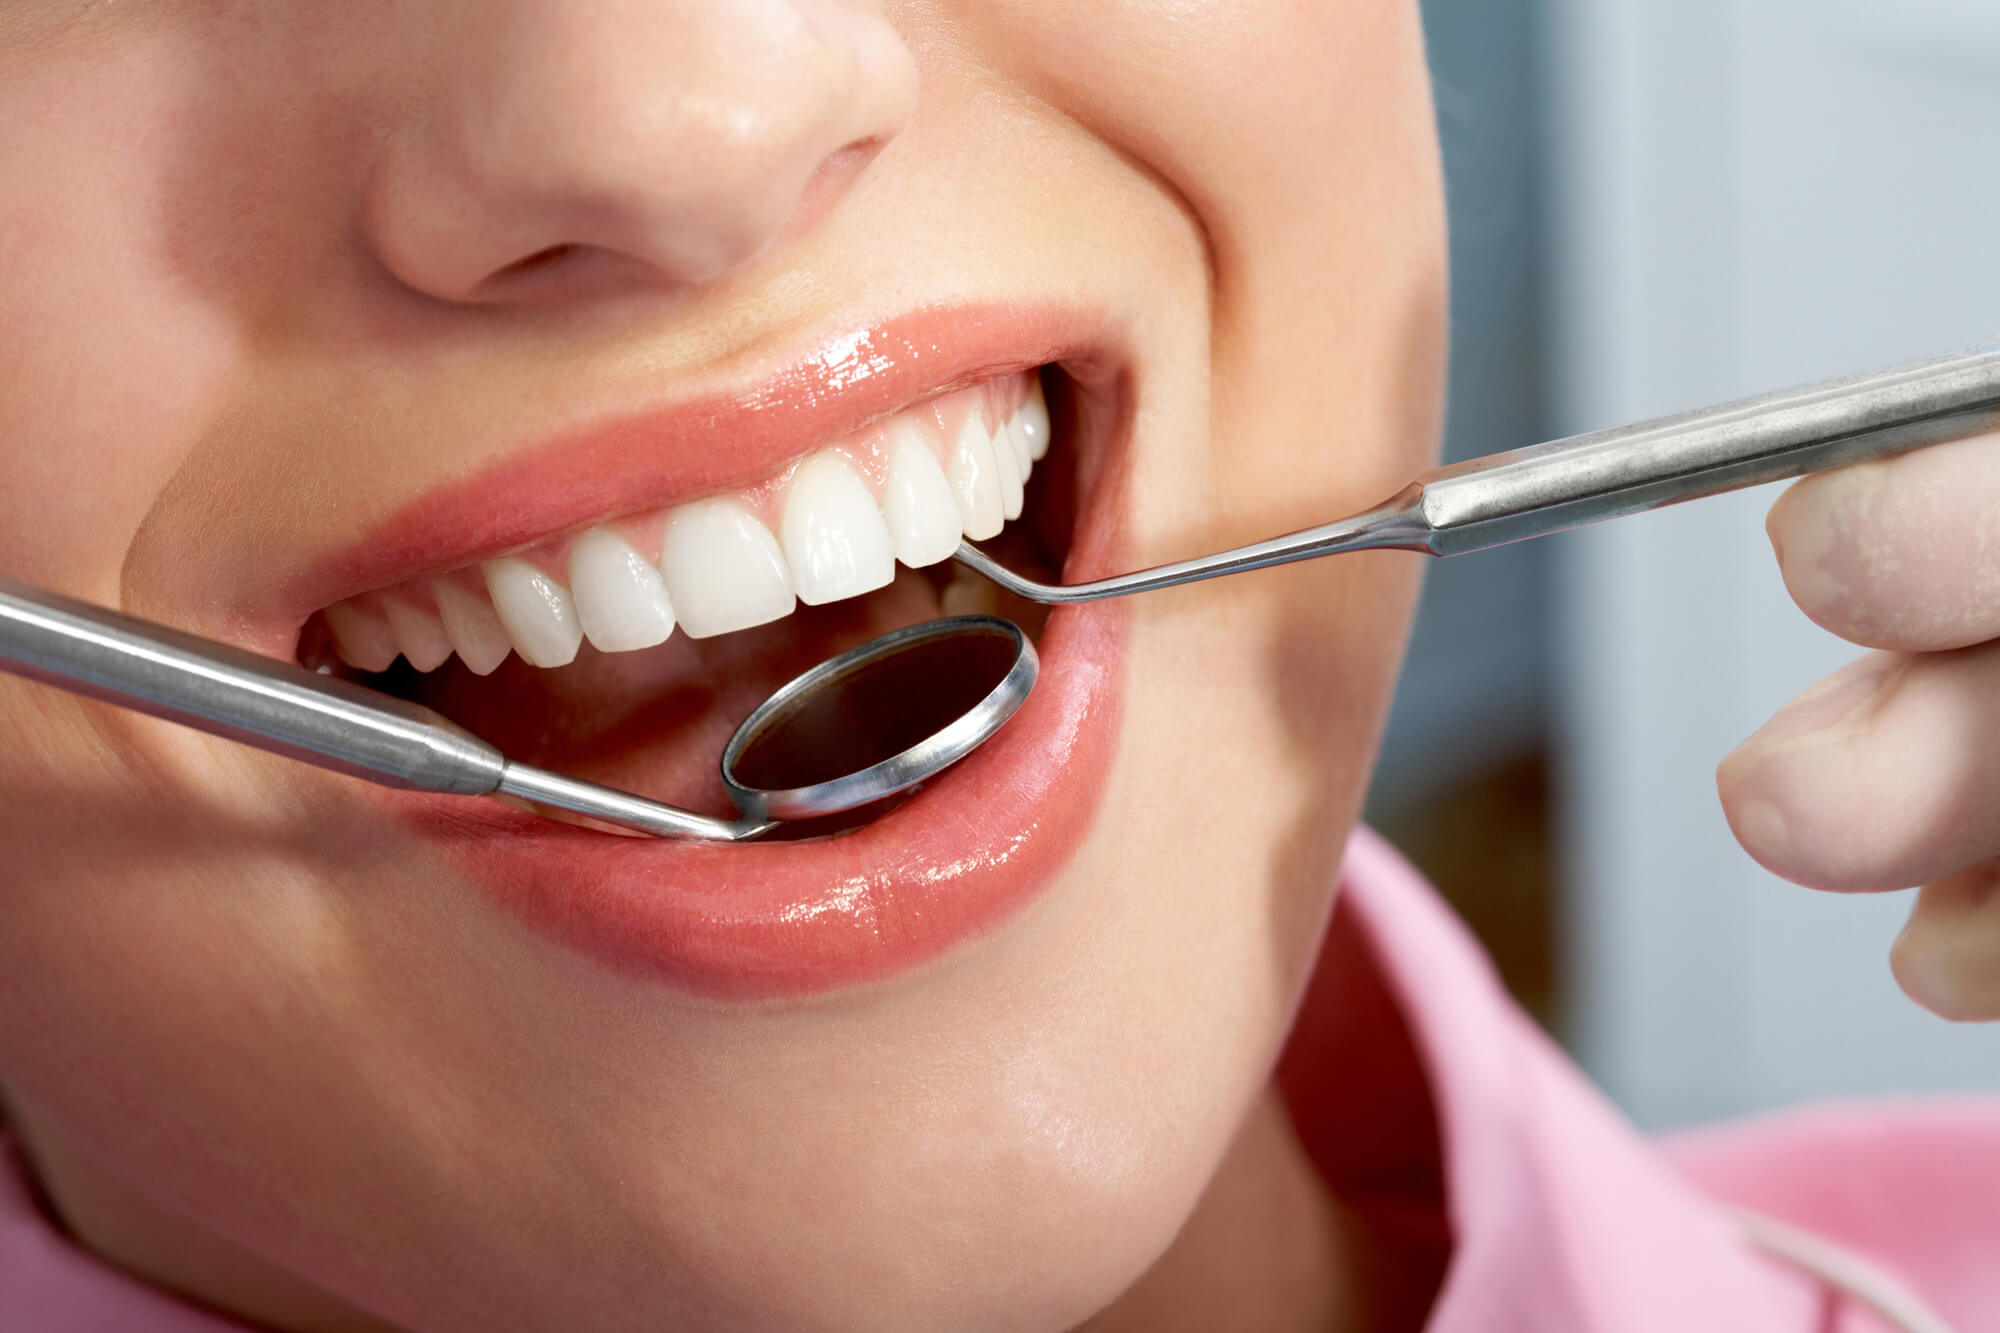 where to find the best dentist in kendall miami?